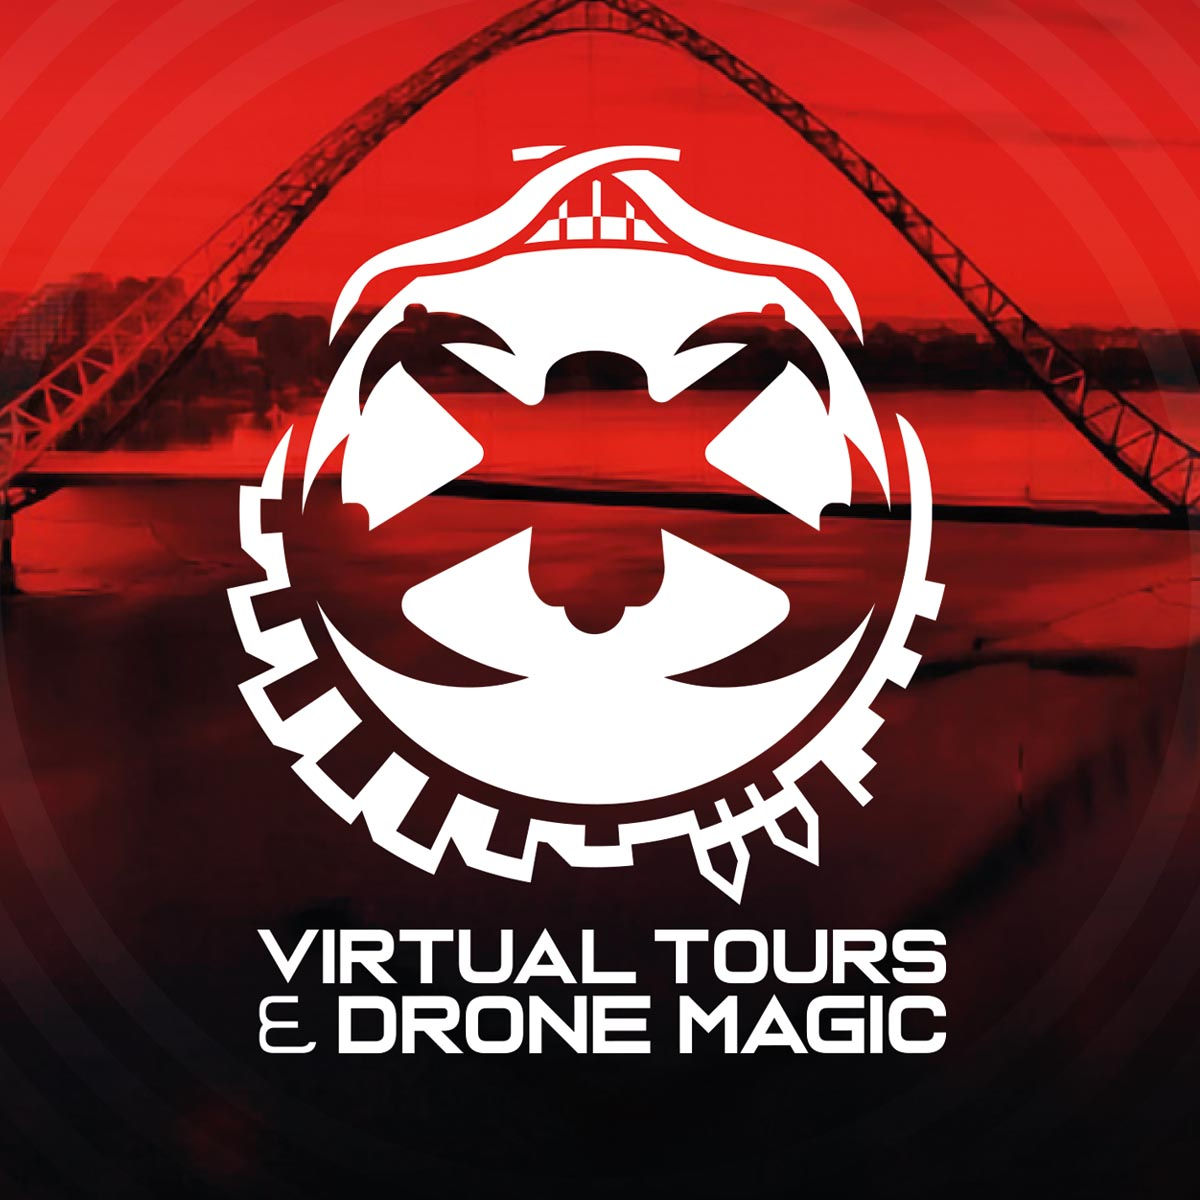 Virtual Tours & Drone Magic